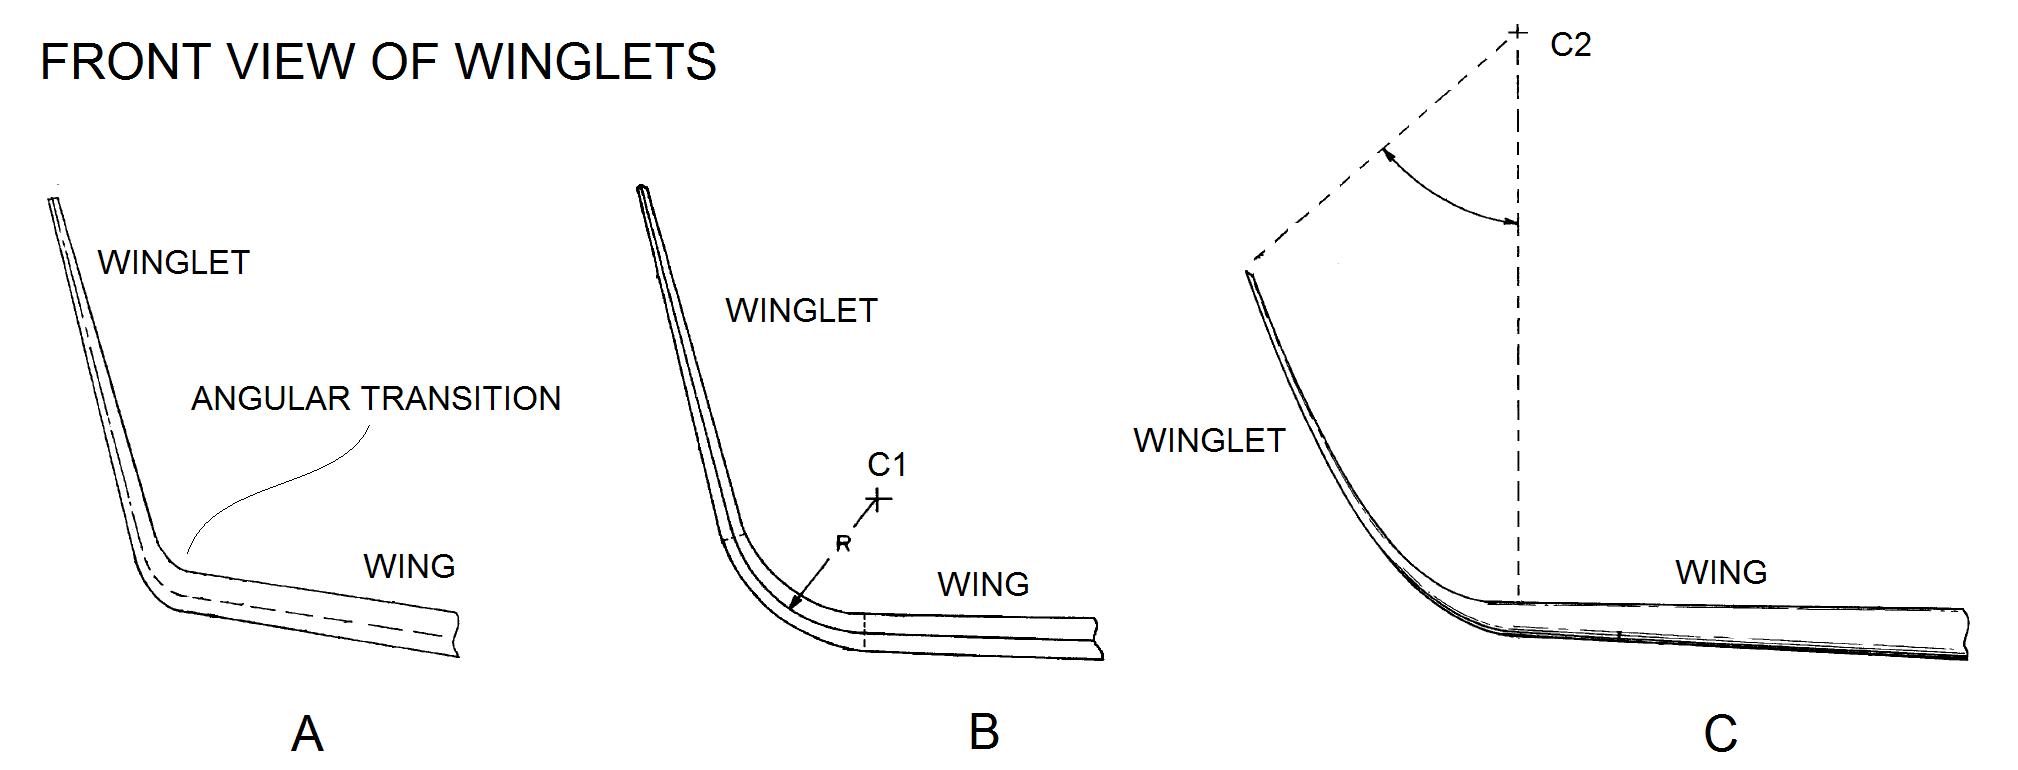 Winglets and Sharklets | The Flying Engineer